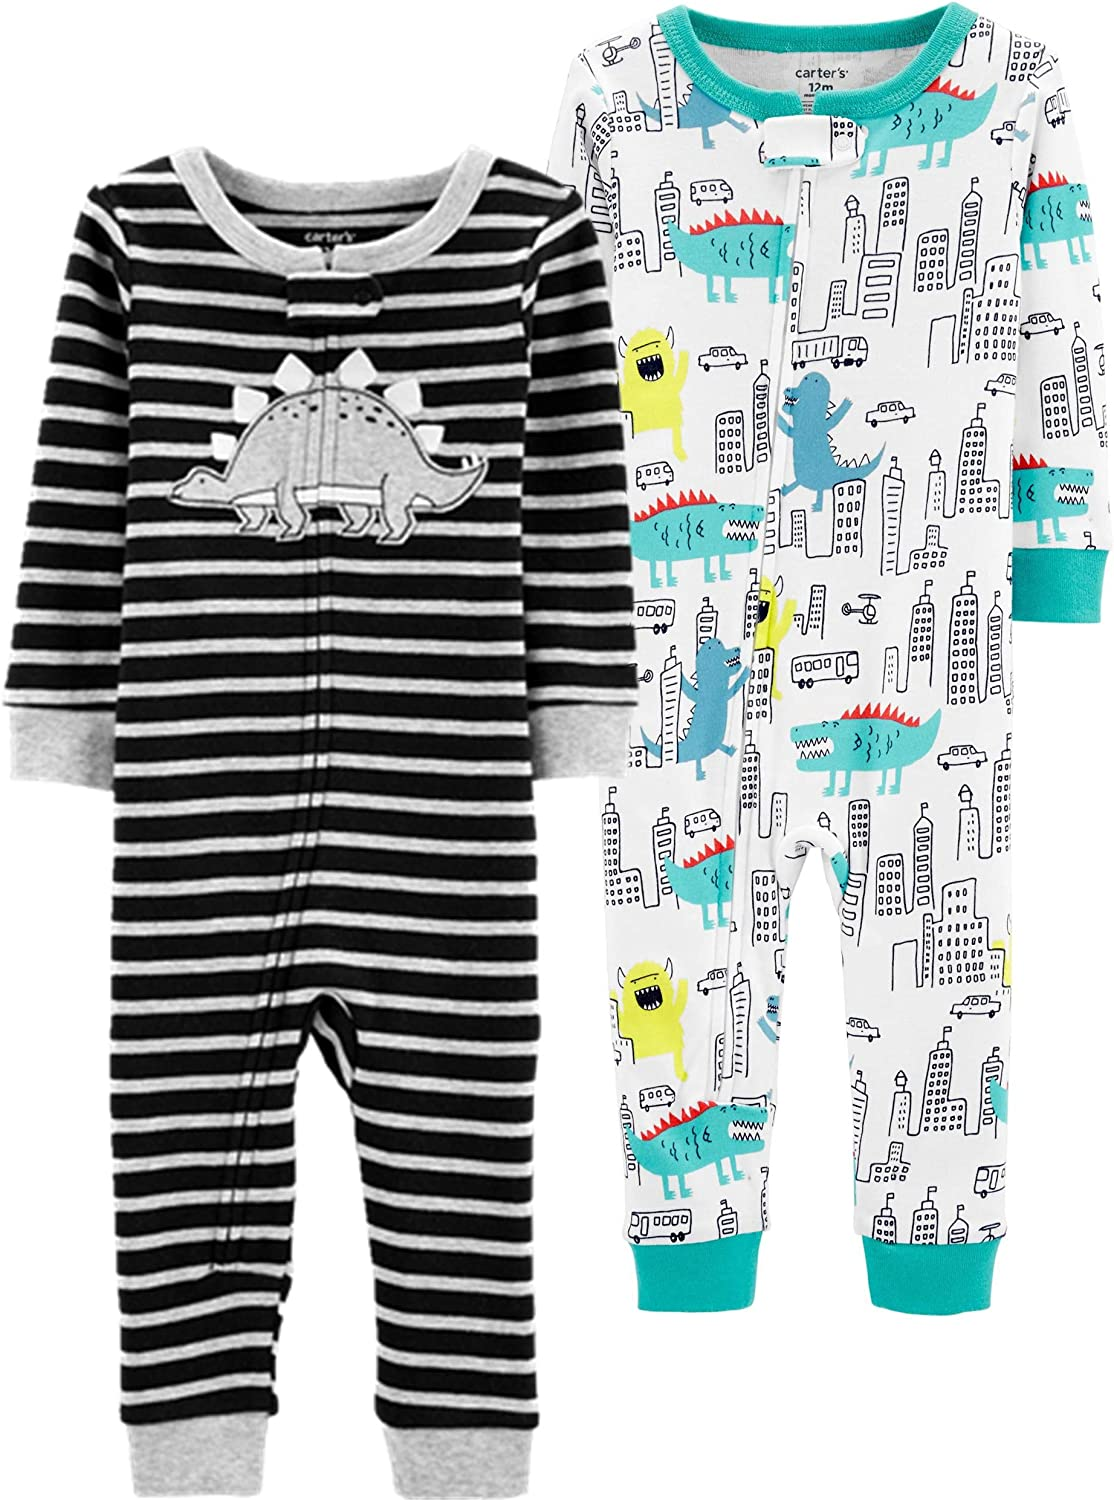 Carters Boys 2-Pack Cotton Footless Pajamas